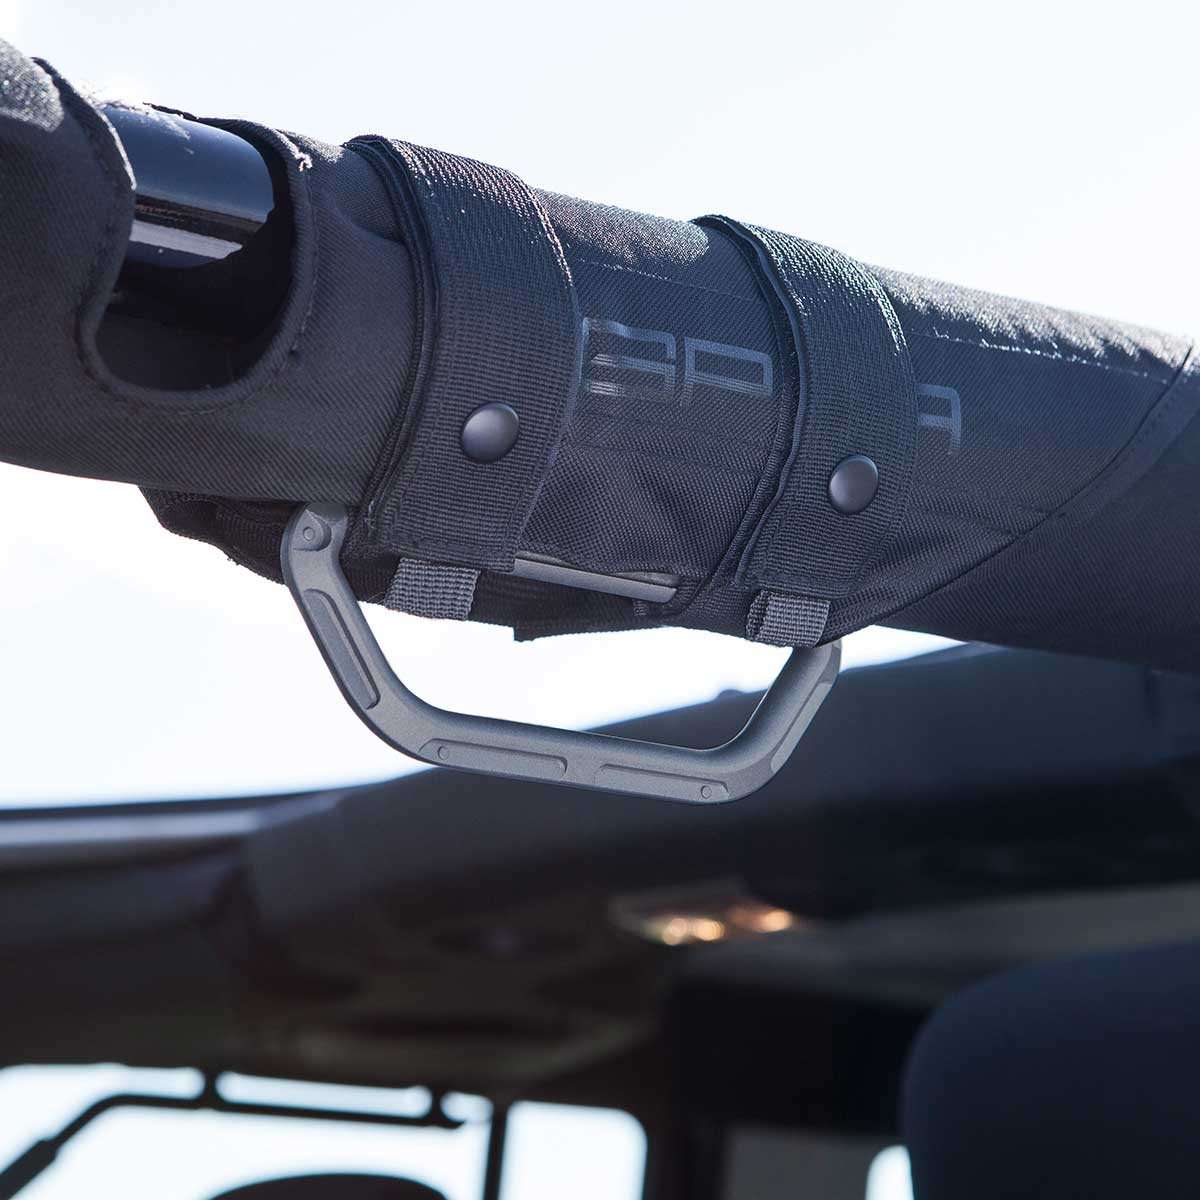 Jeep Wrangler GP-Grip grab handle gray